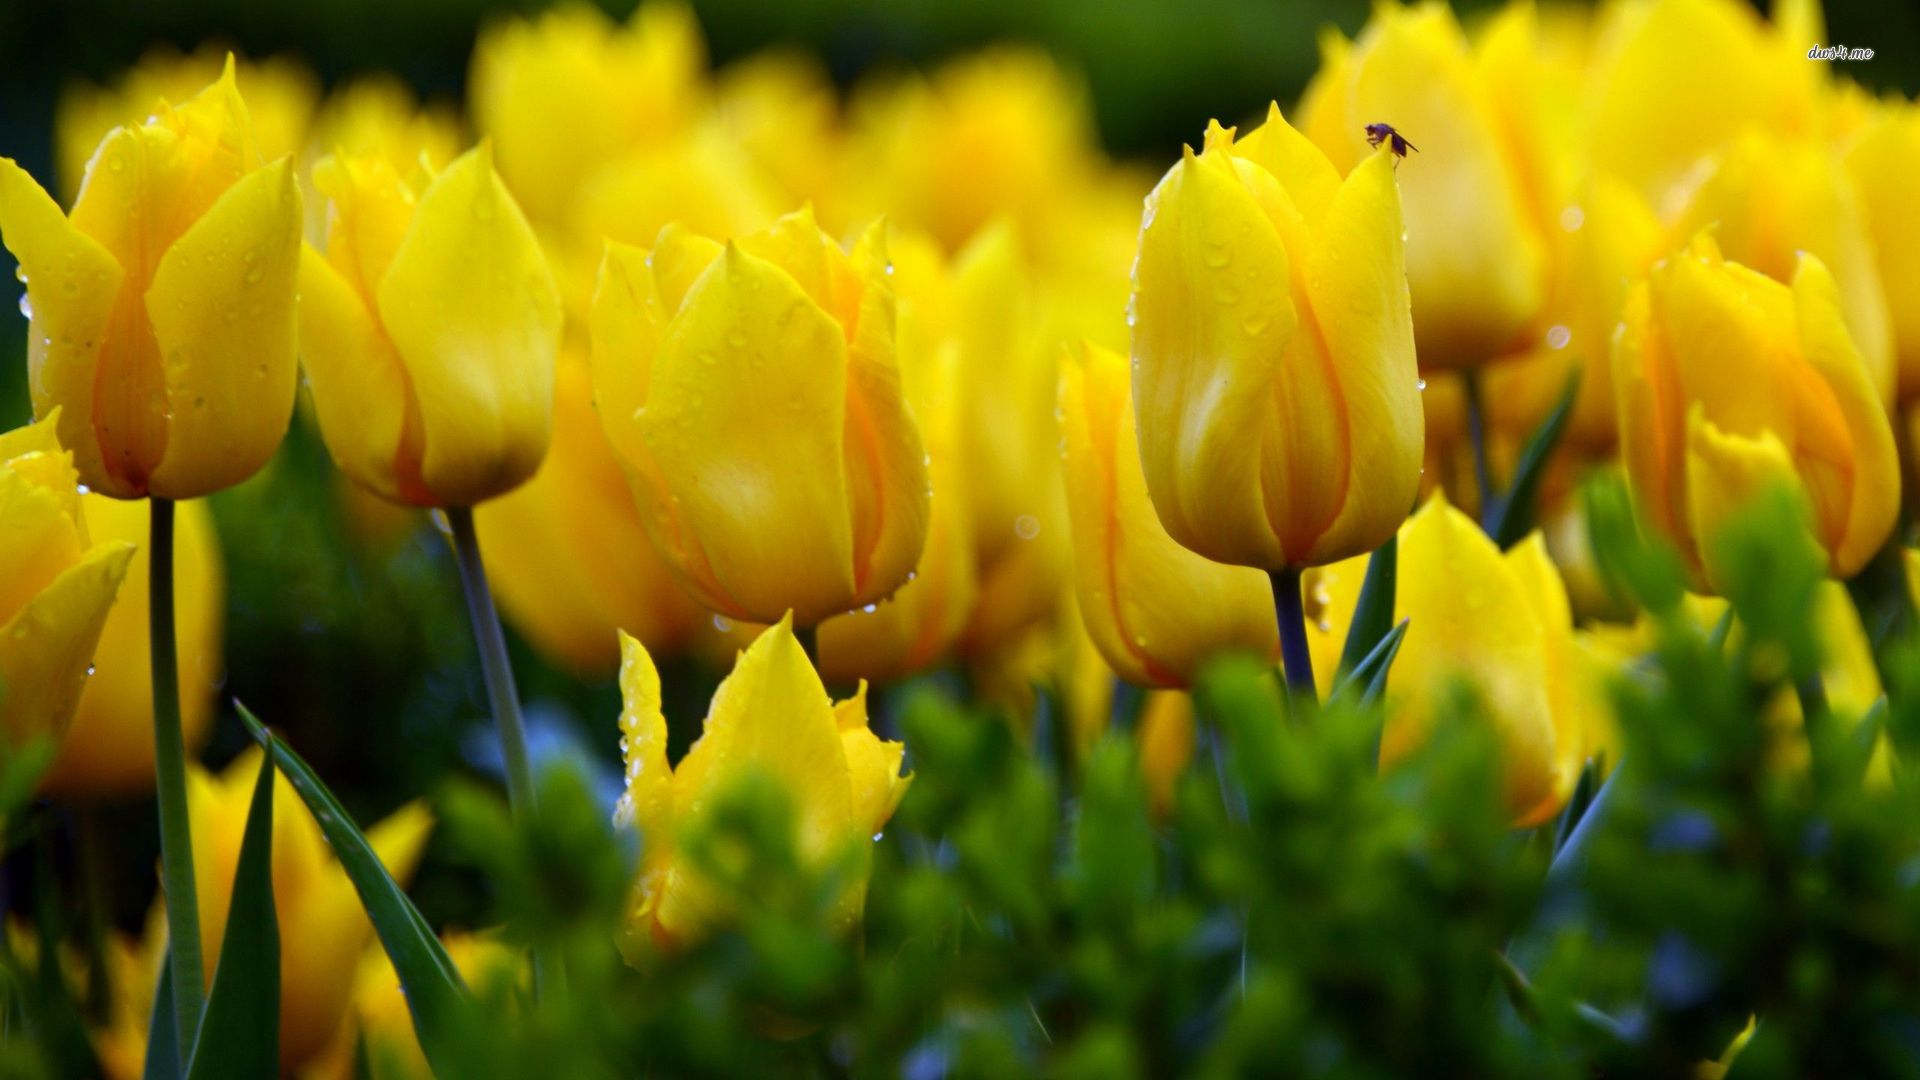 Yelow Tulips